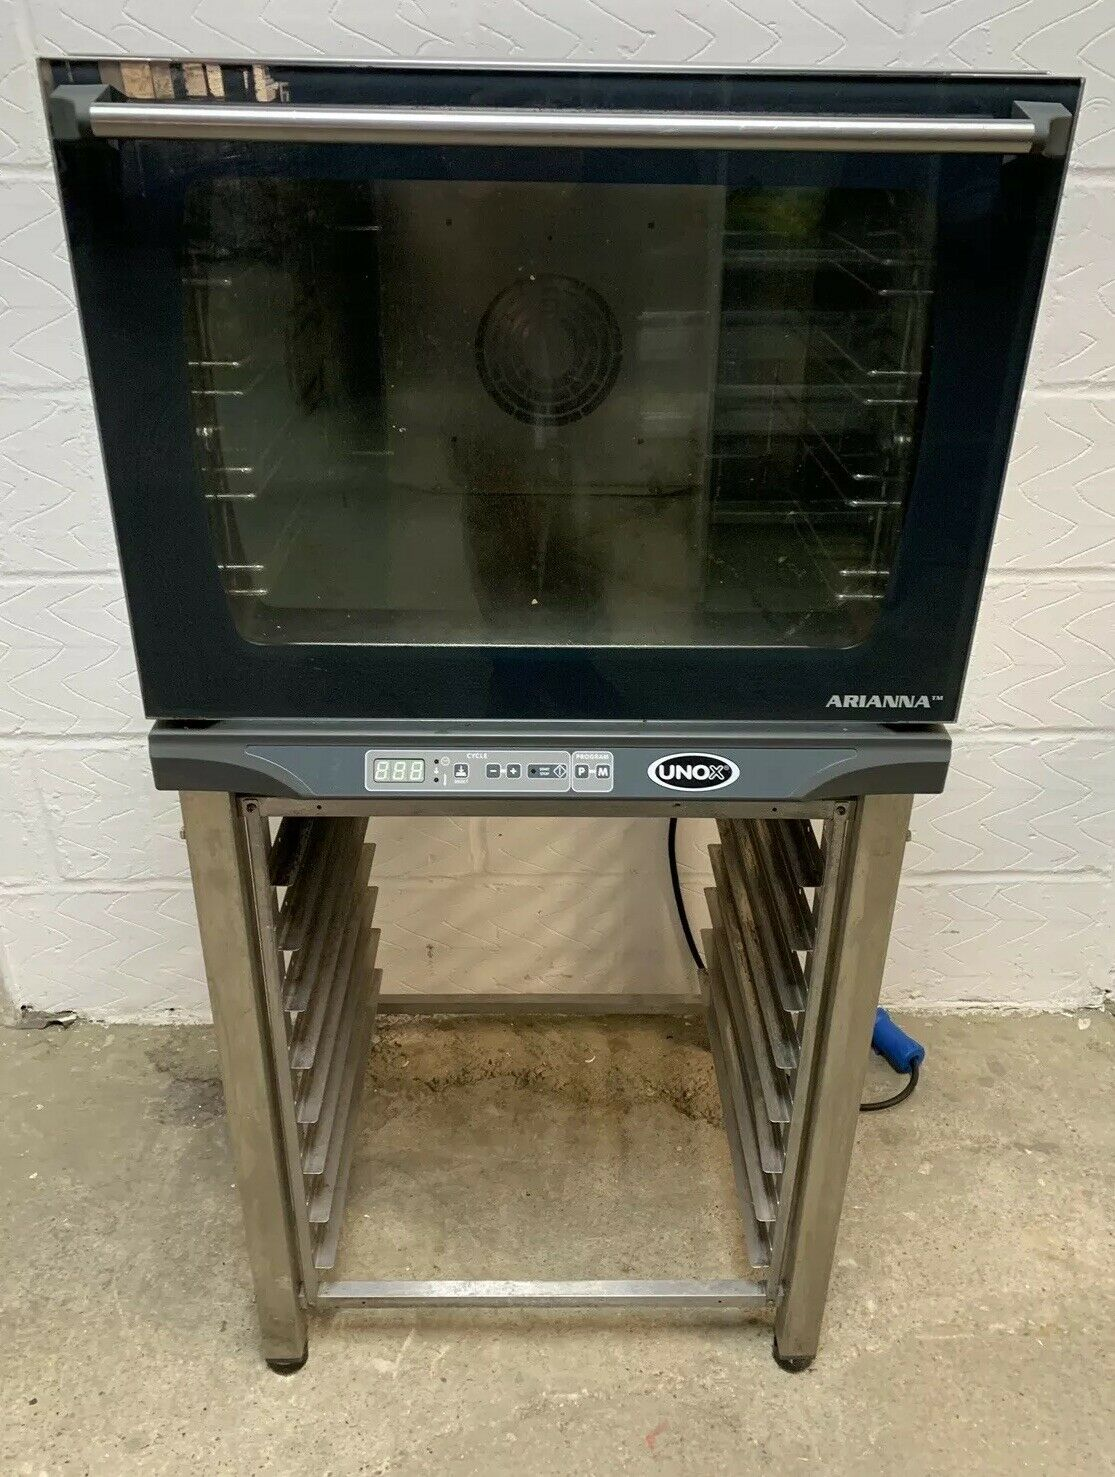 Lot 88 - Unox Arianna XF130-B Convection Oven